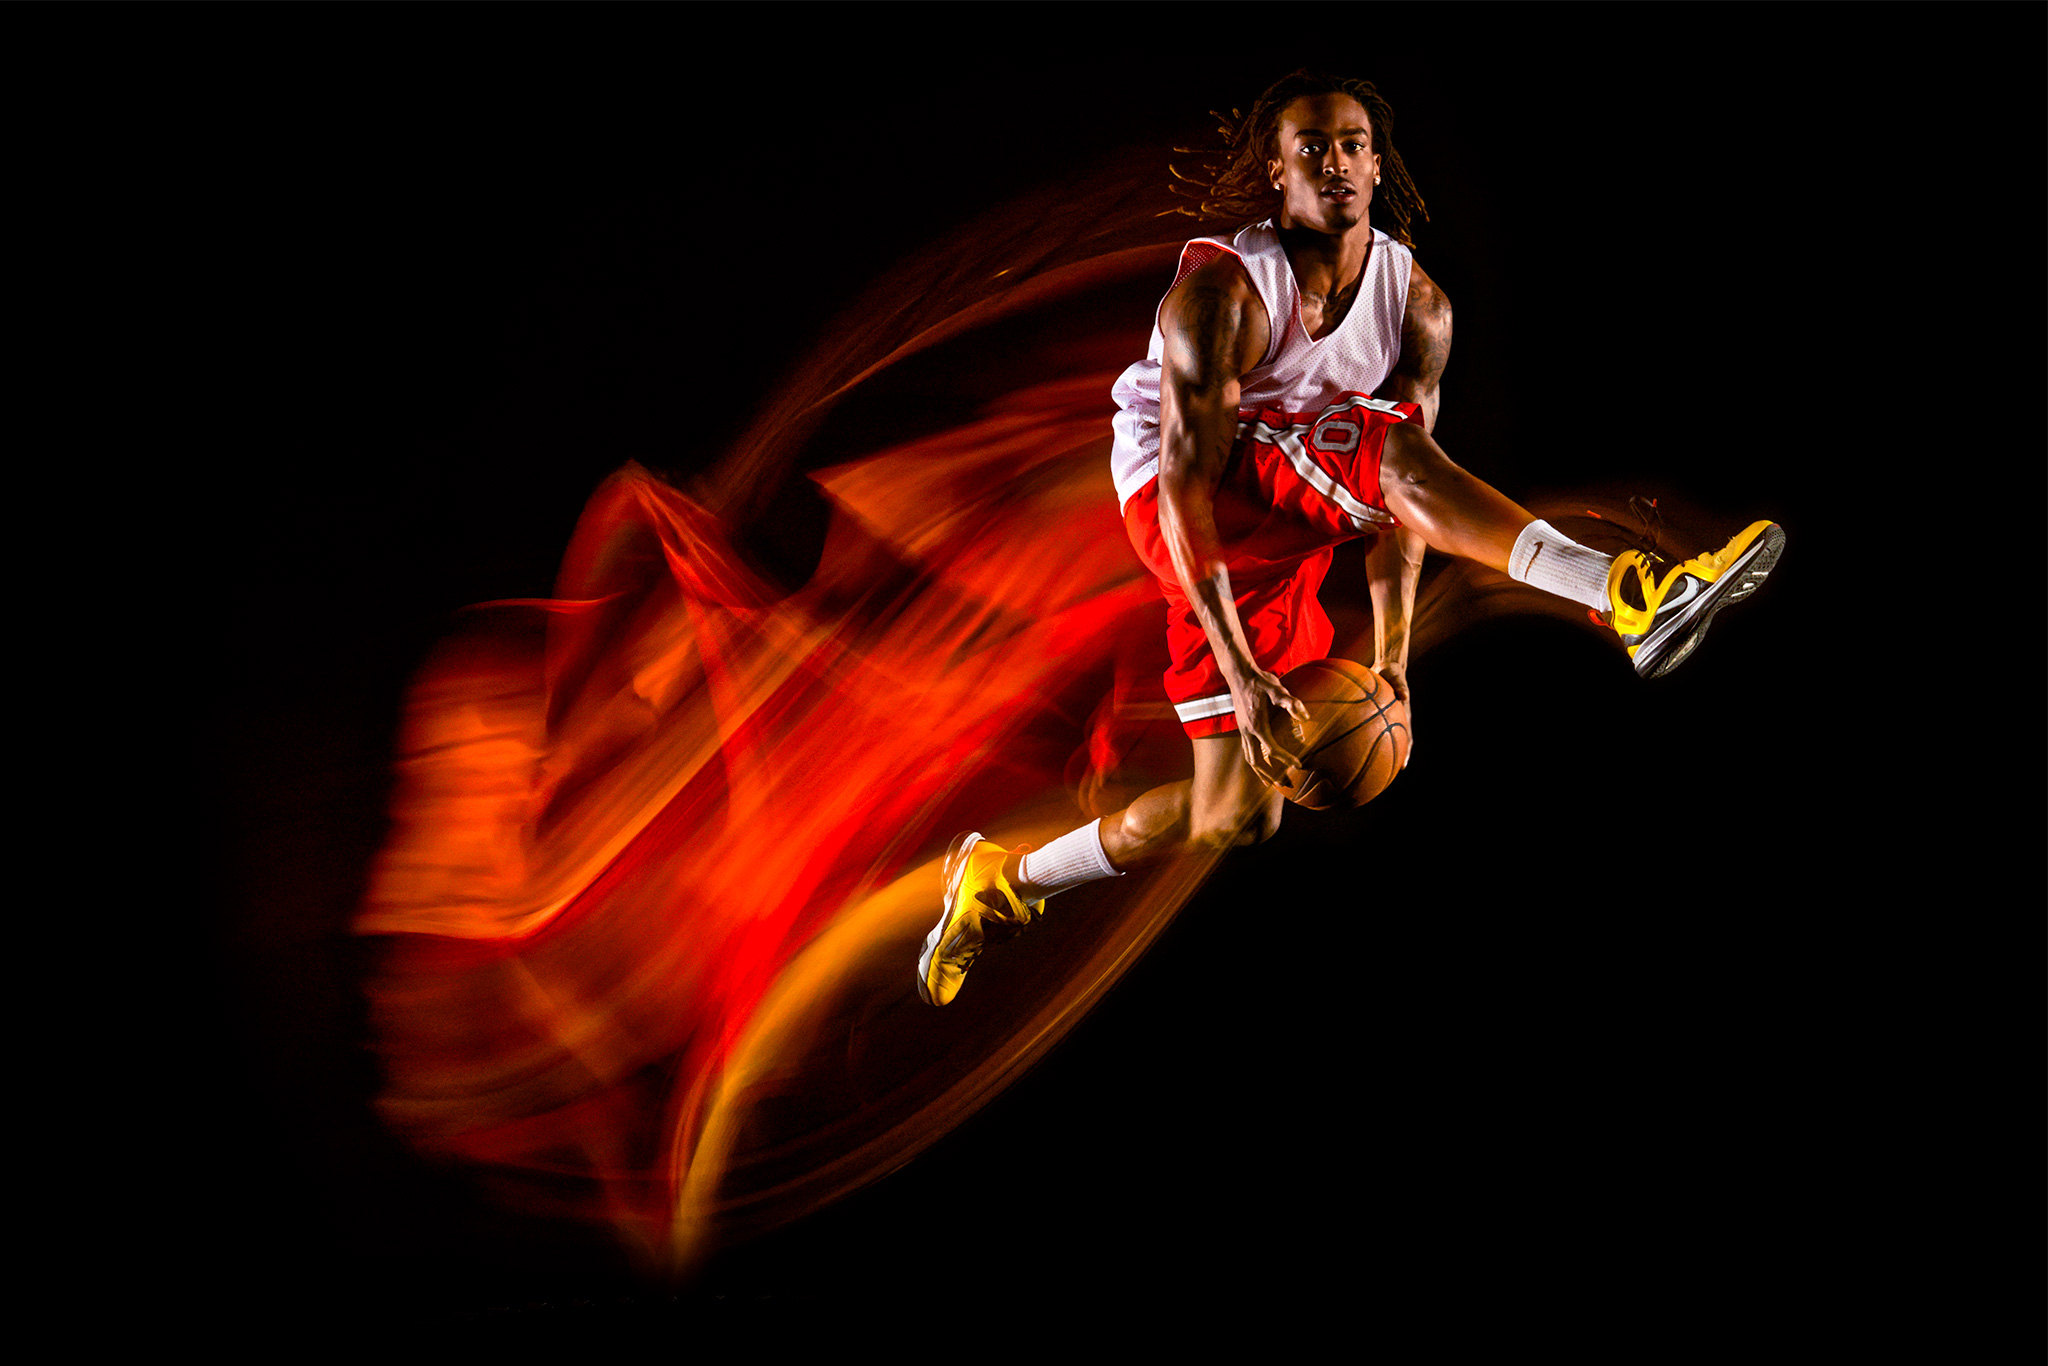 Basketball Motion Trajectory Photo Colorful | Zach Ancell Photography